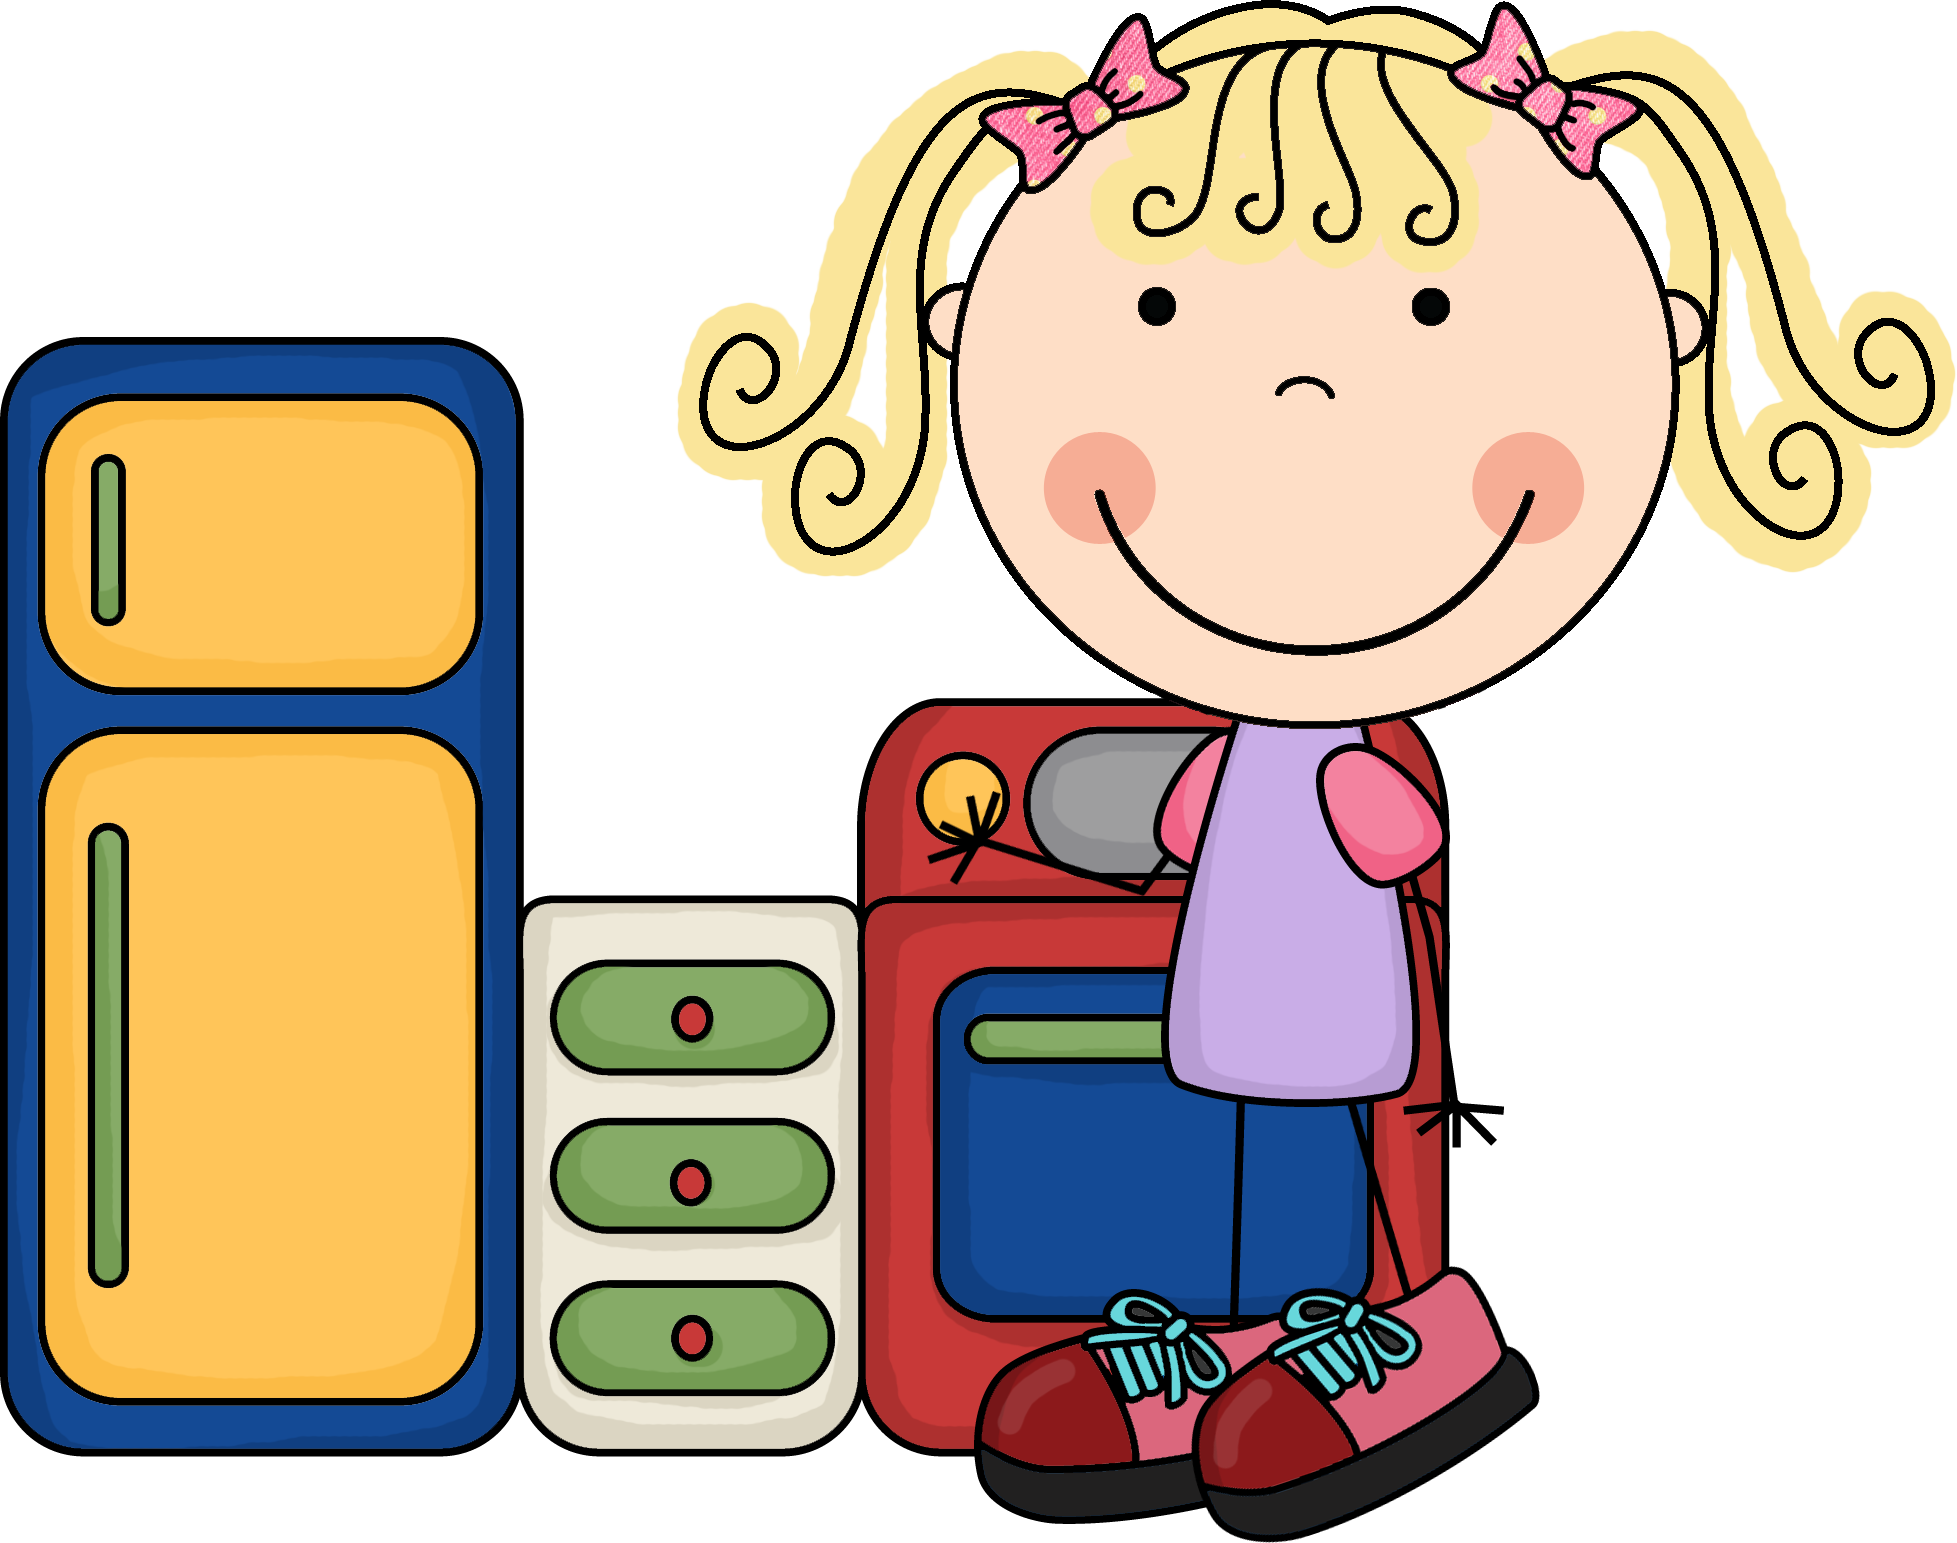 Kindergarten stations . Housekeeping clipart image